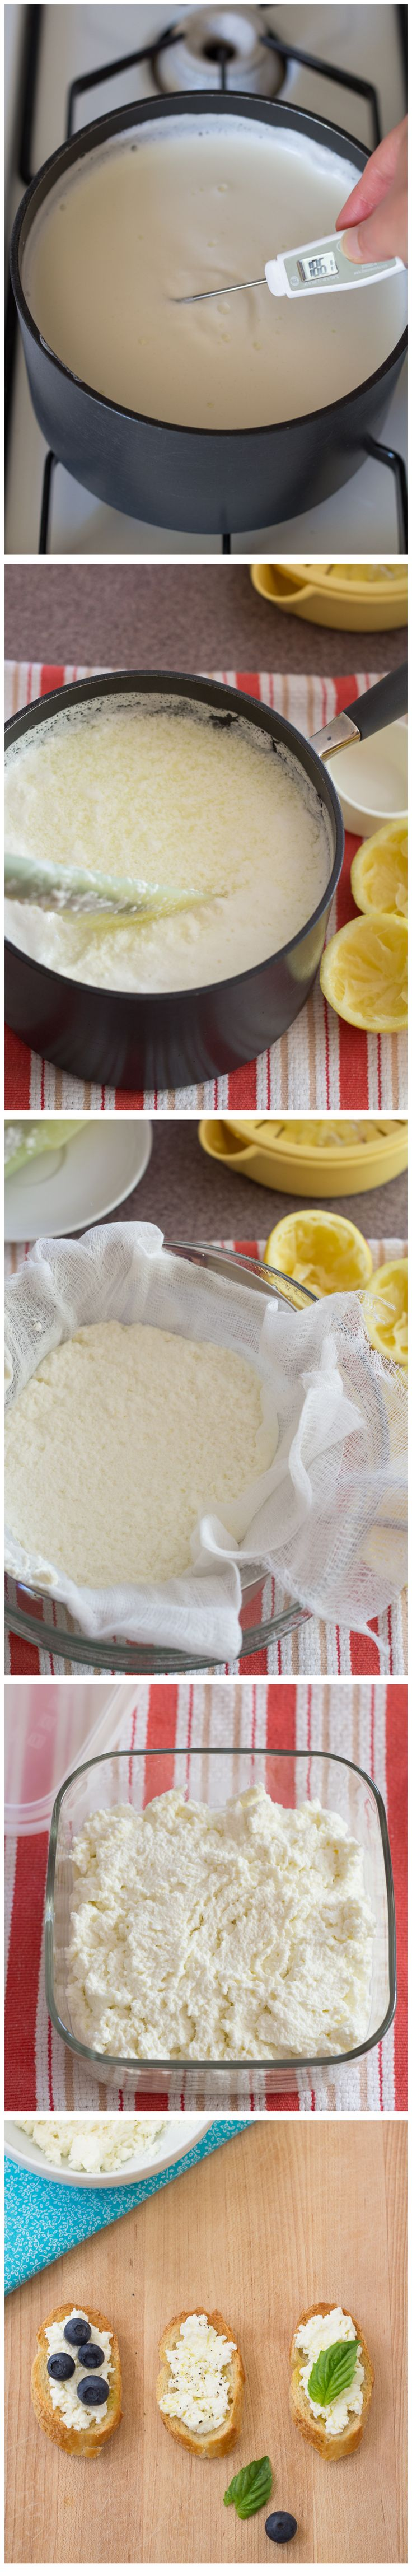 Rich homemade ricotta cheese makes a wonderful spread for crostini and ...